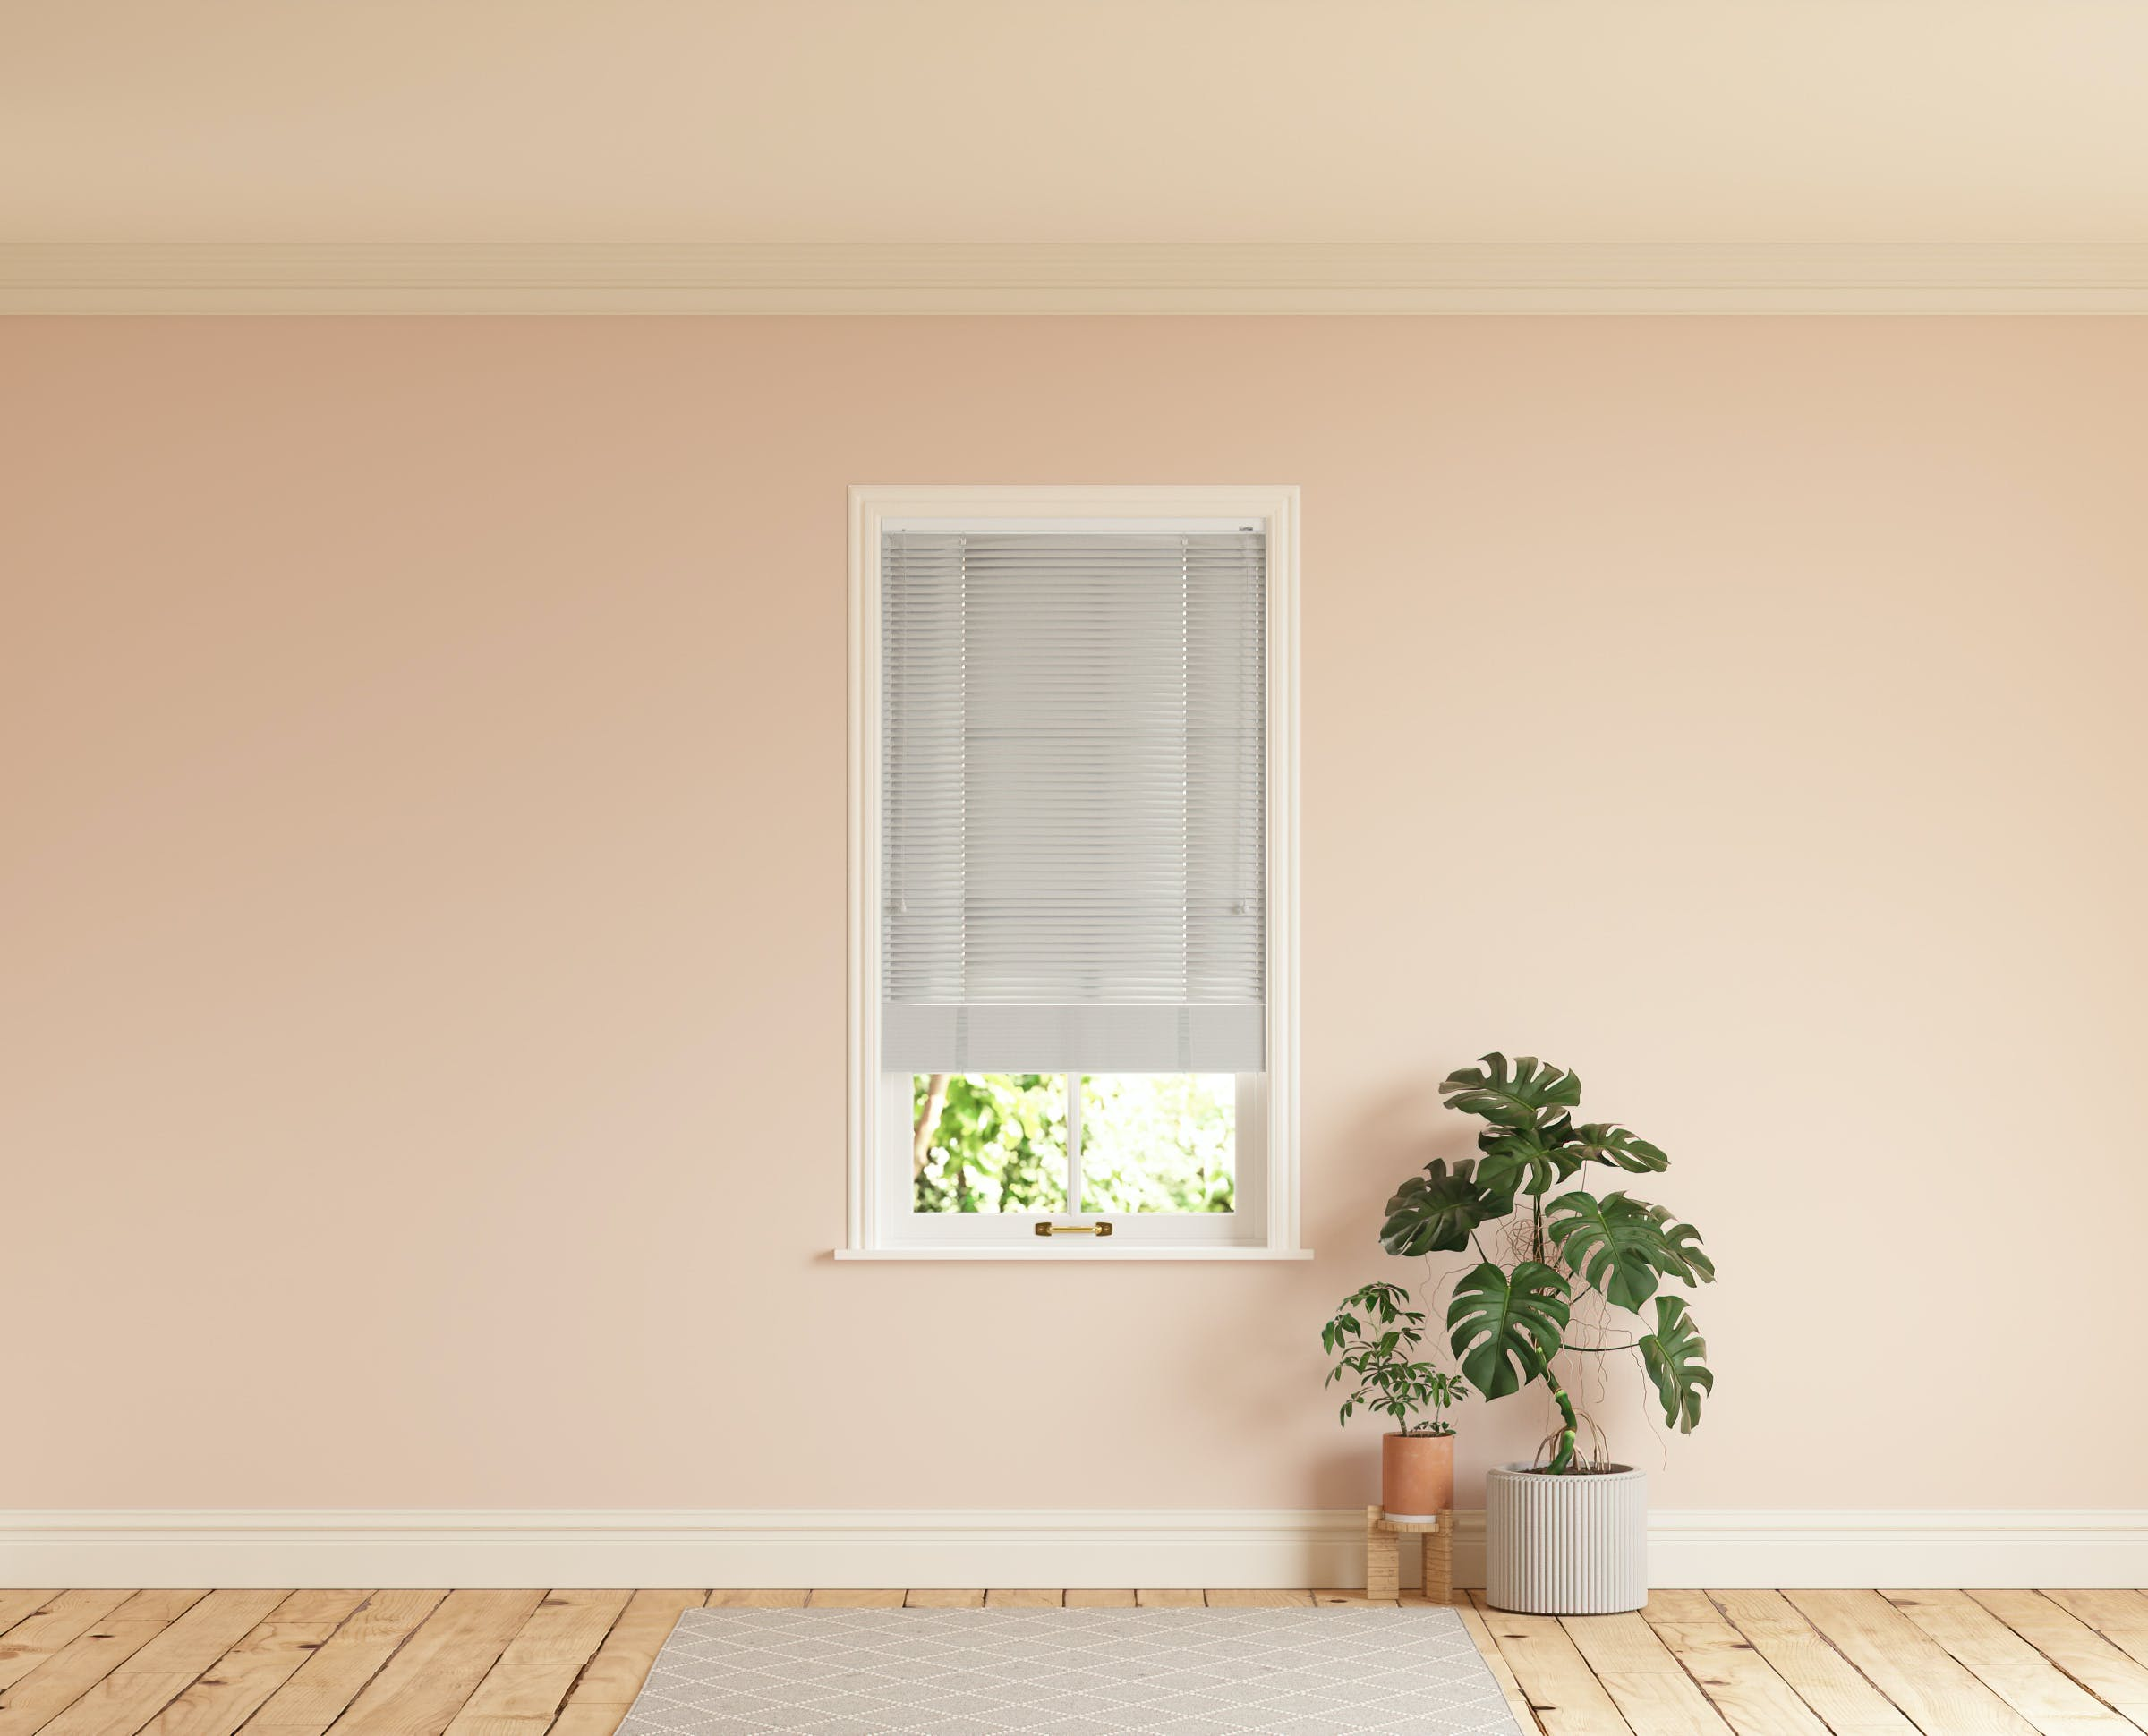 Room with walls painted in Lick Pink 02 and Grey 03 Venetian fine grain blinds